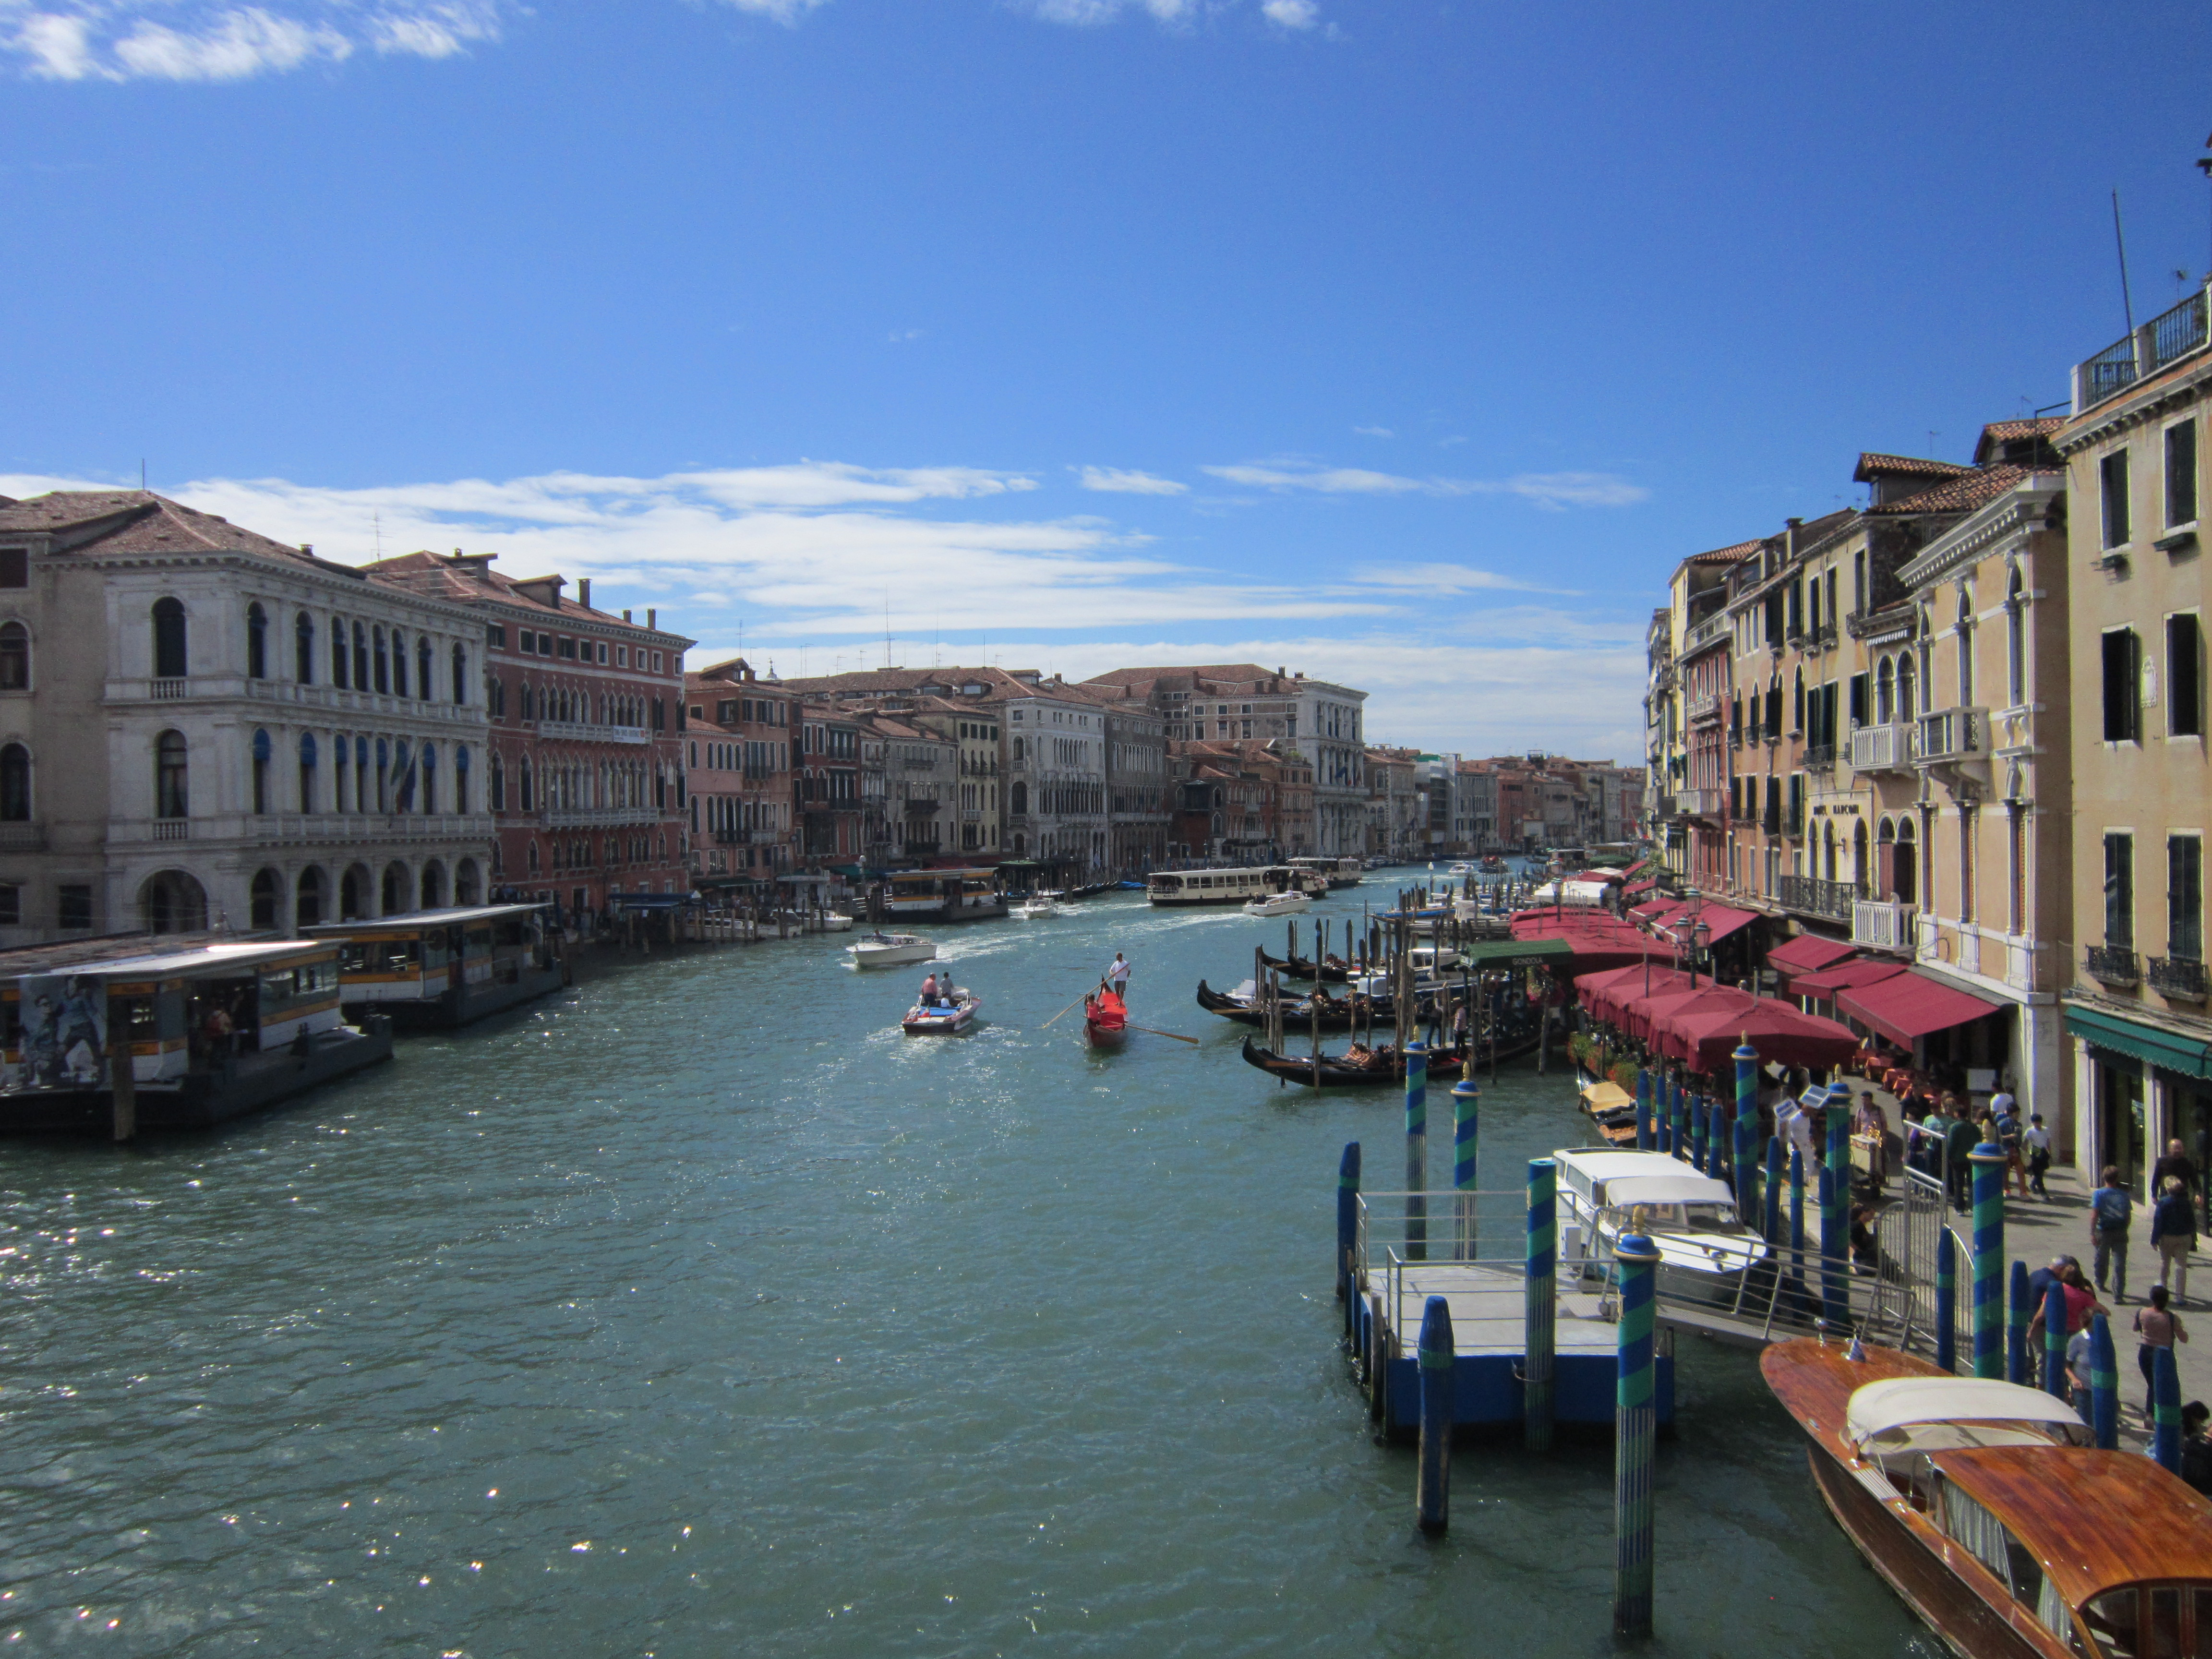 A view of Venice on a sunny day,  one of the major destinations of this Italy backpacking itinerary. Boats moved along the large canal in the background